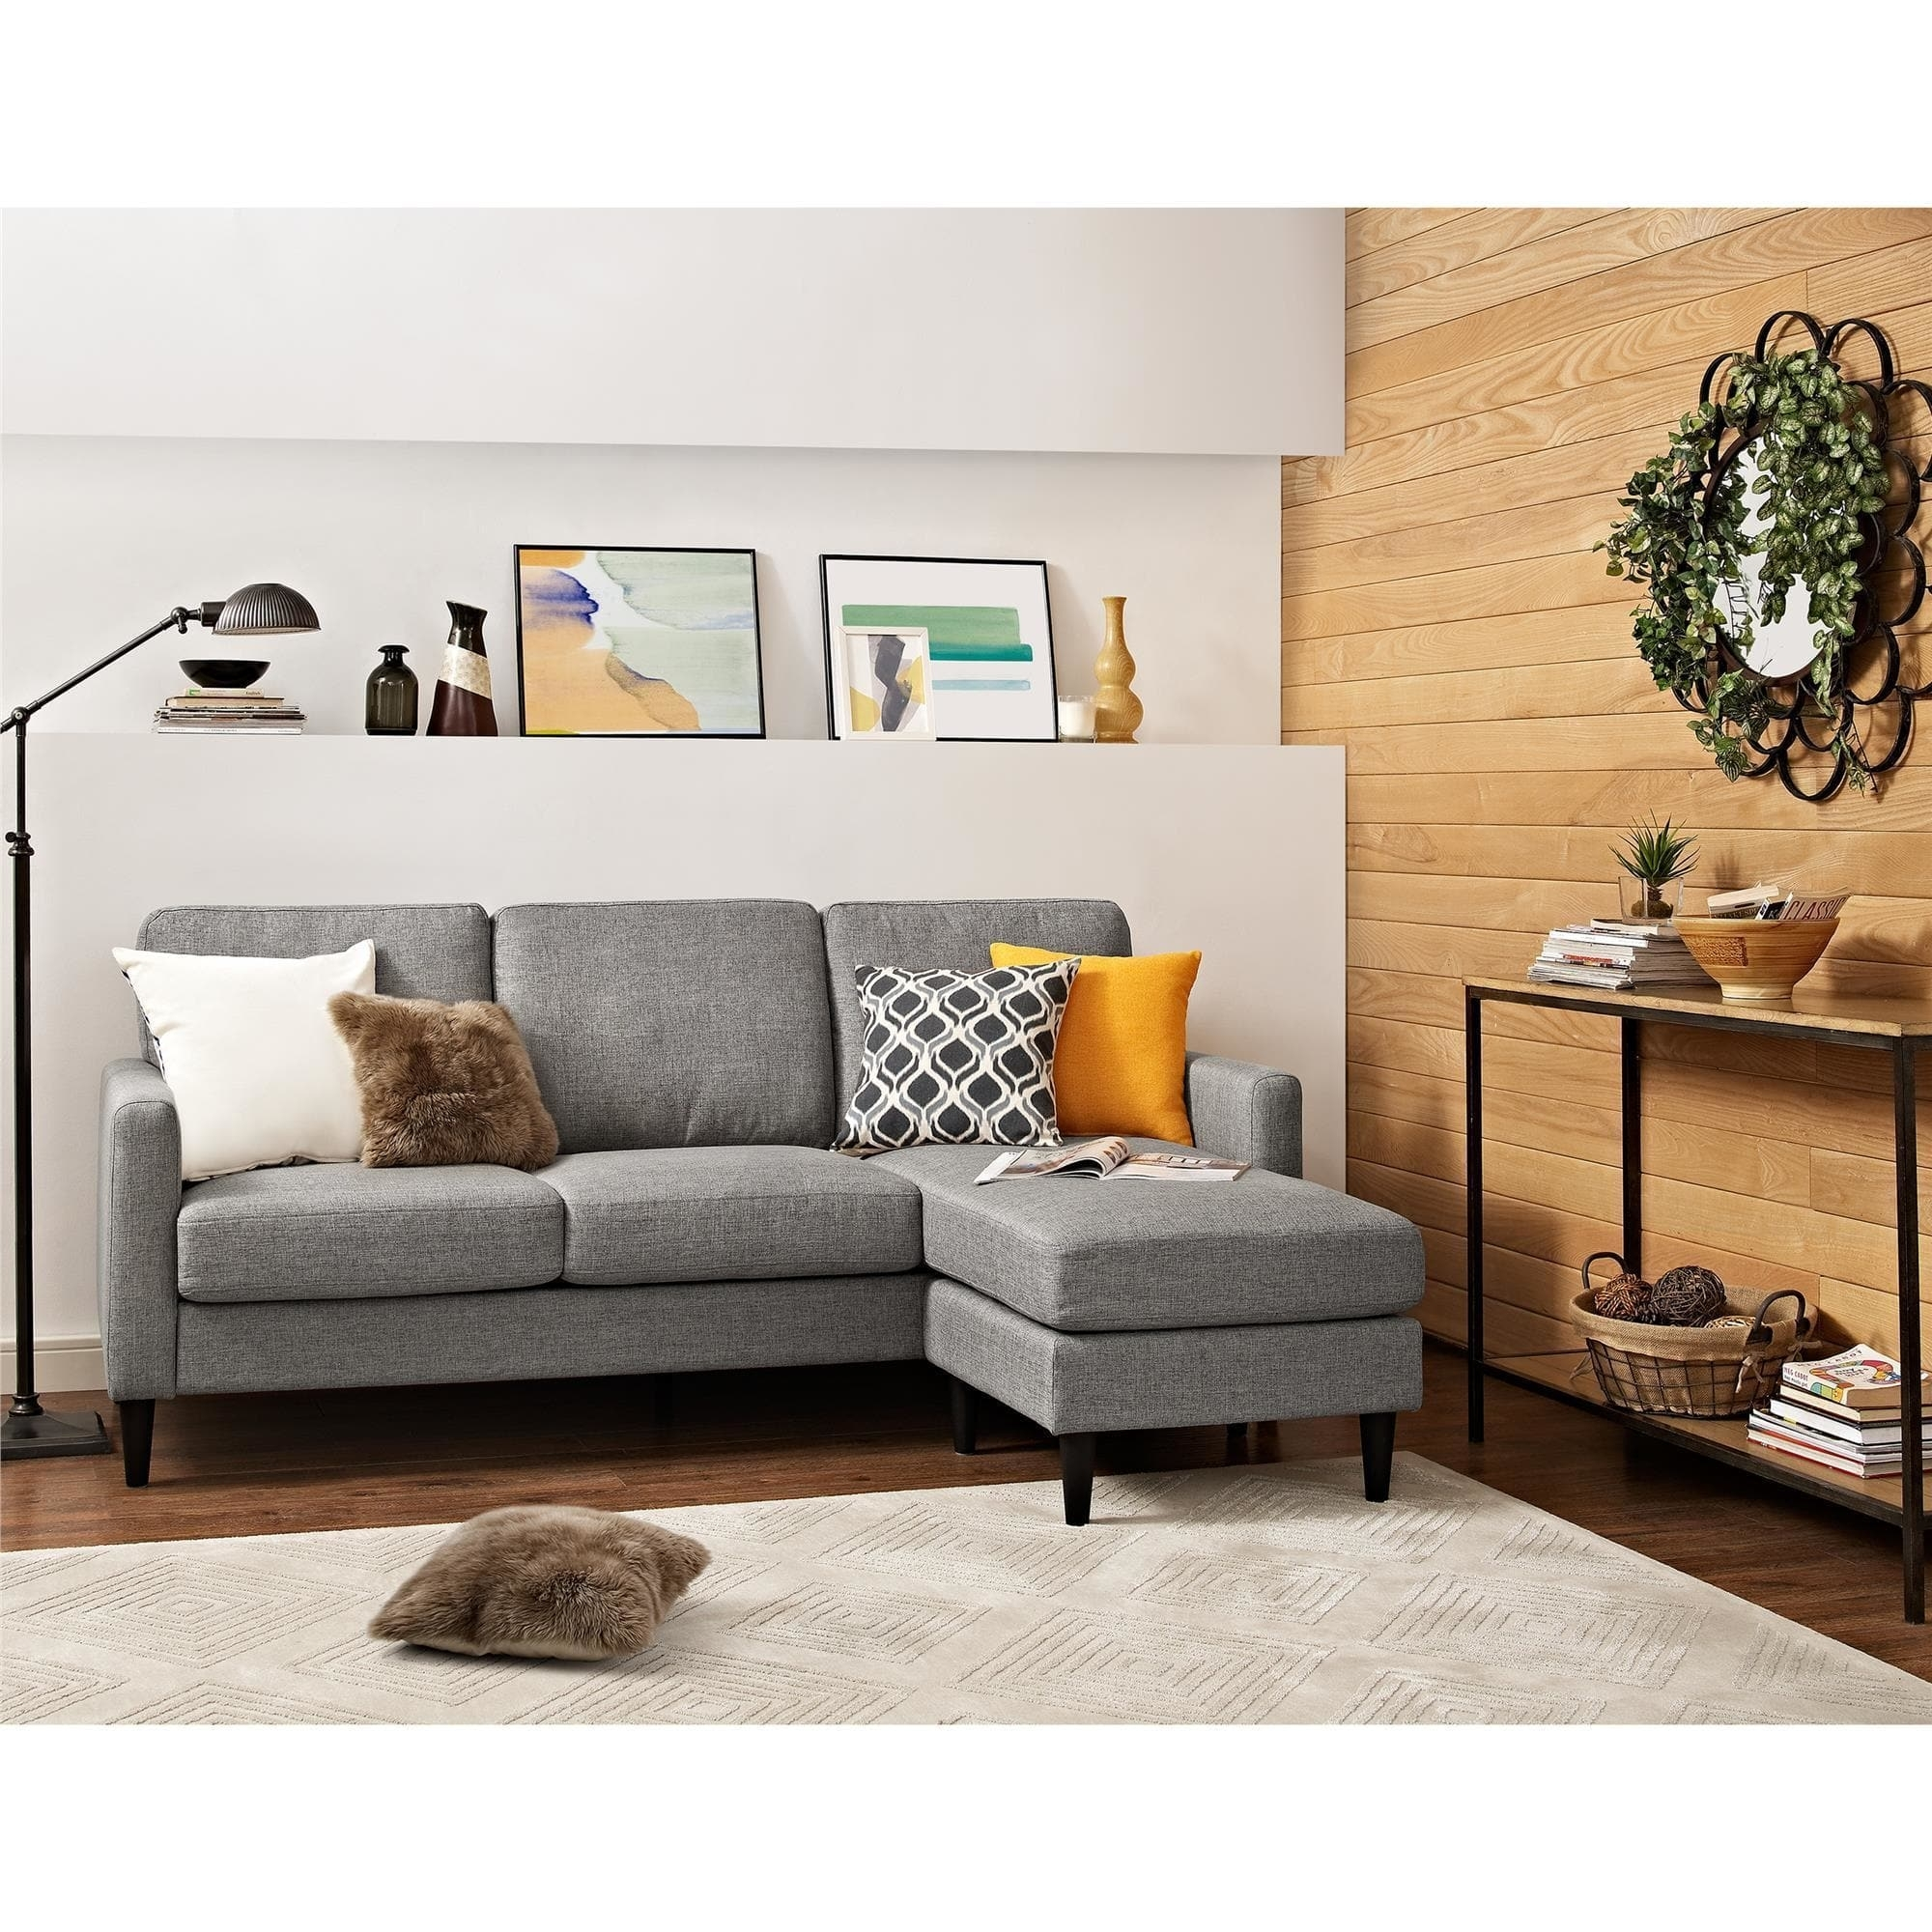 Dorel Living Kaci Grey Sectional Sofa - Free Shipping On Orders Over in Overstock Sectional Sofas (Image 5 of 10)